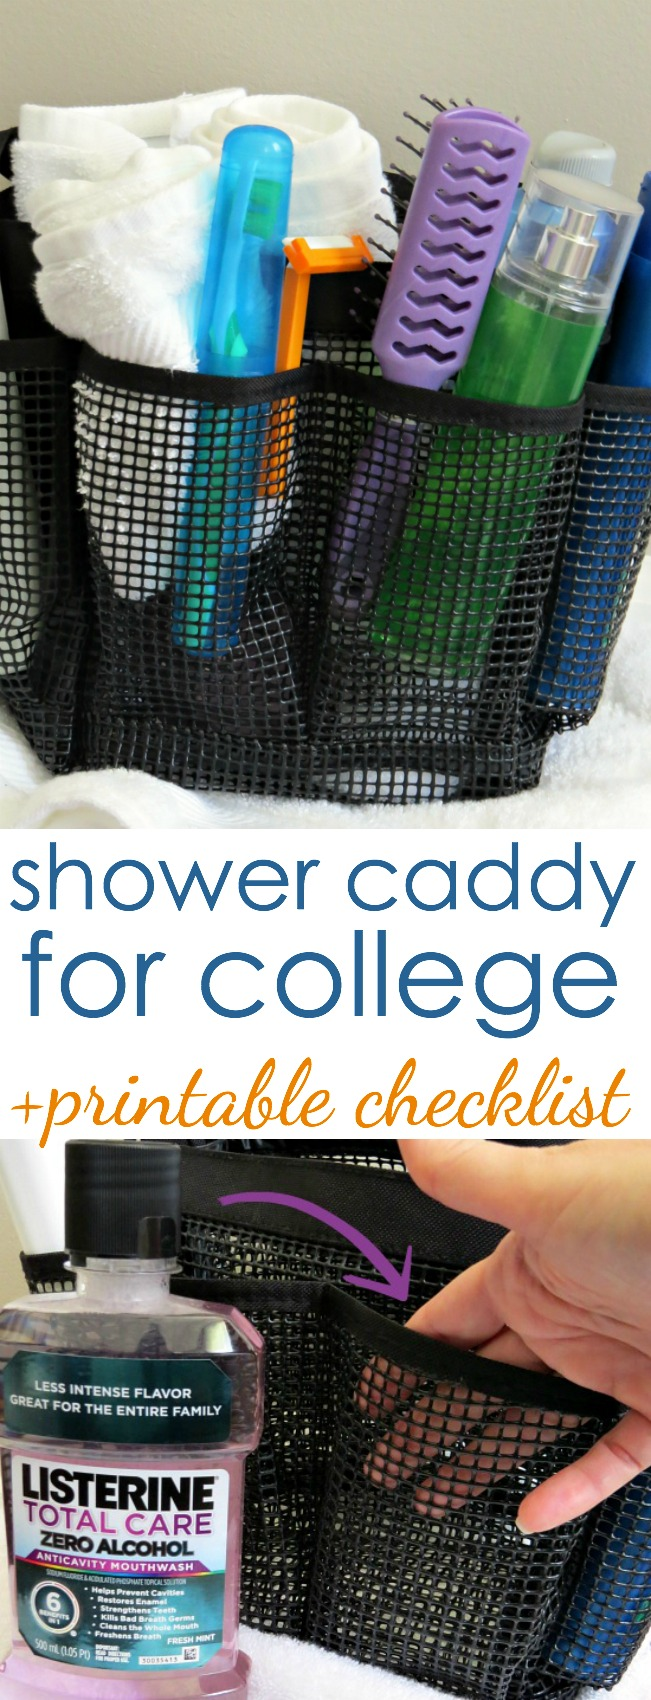 Best Shower Caddy for College